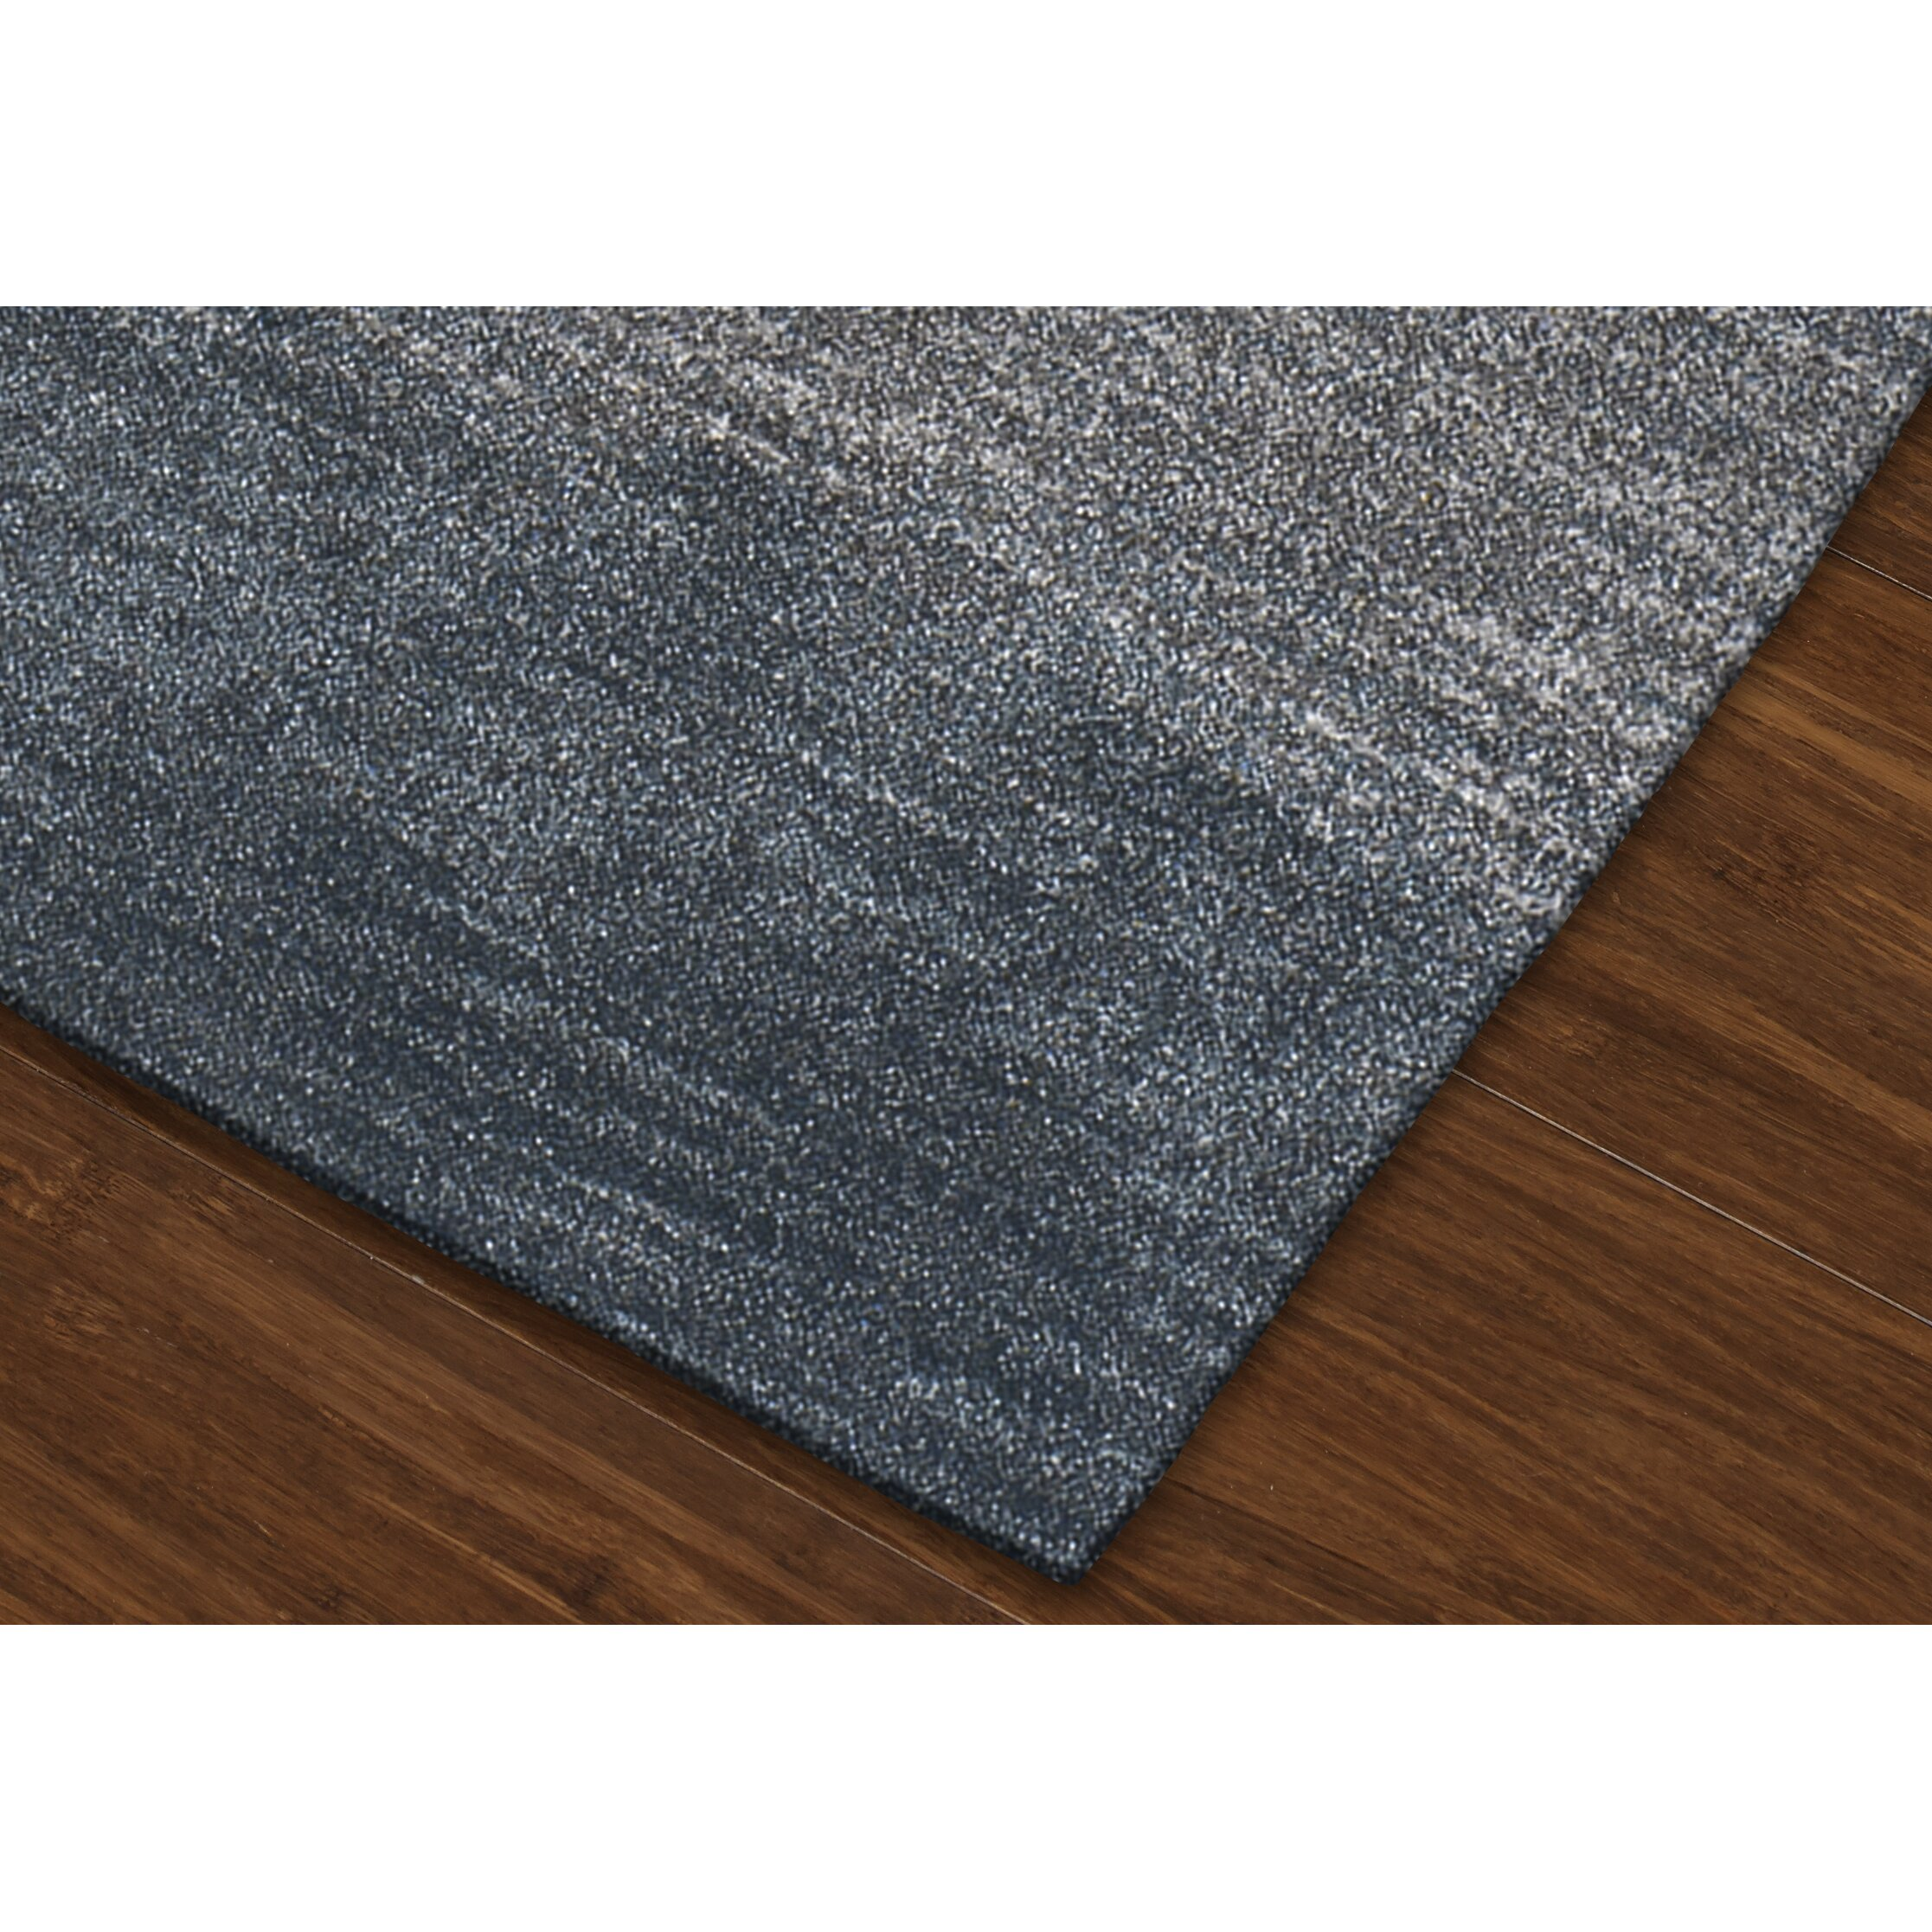 Dalyn Rug Co. Tempo Teal Area Rug & Reviews